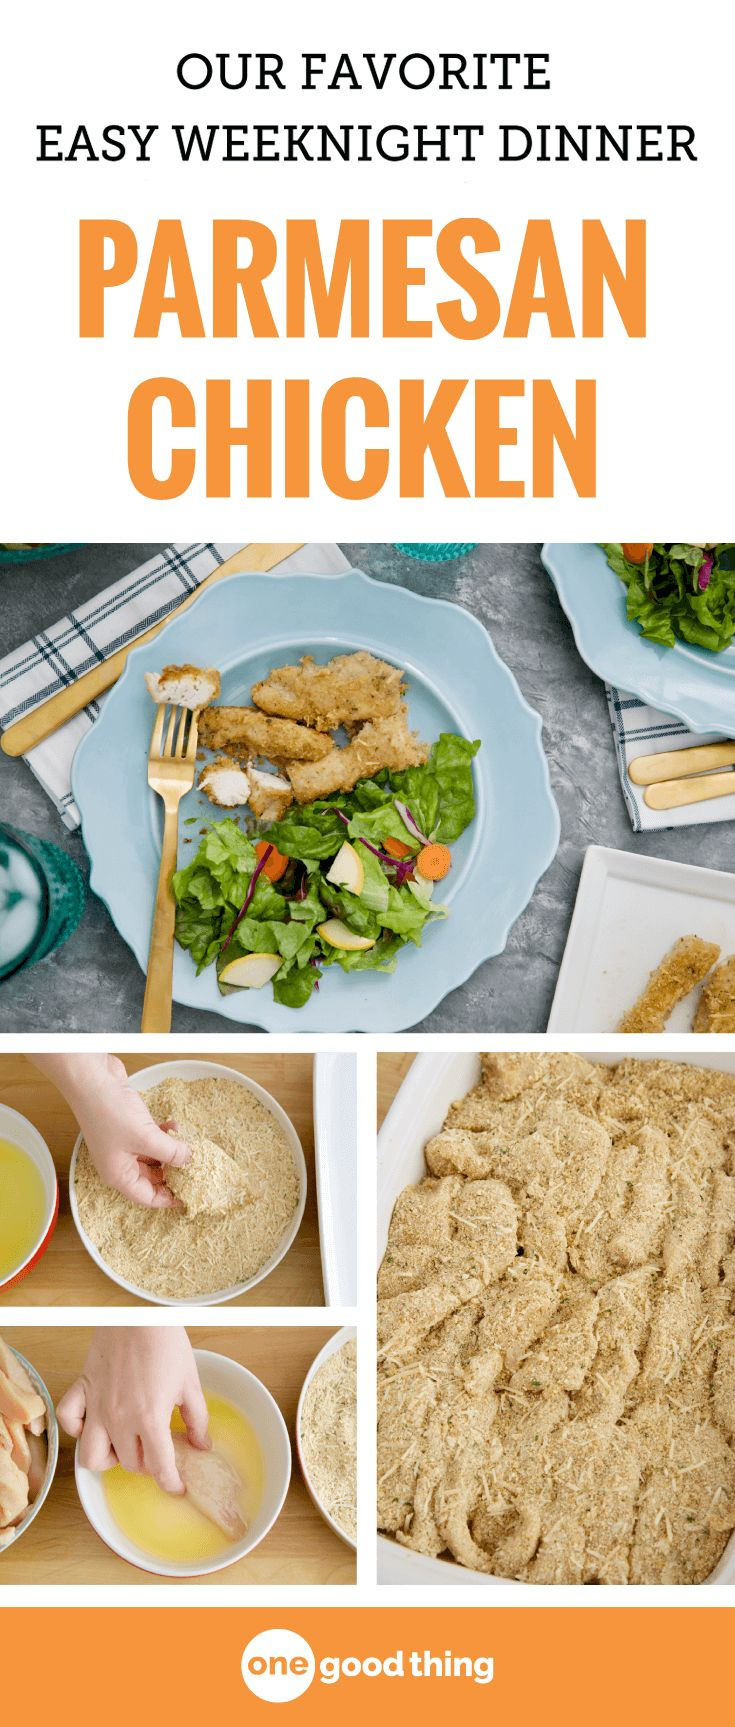 This Parmesan chicken is one of my go-to recipes when I need to get something on the table FAST! It's juicy, crispy, buttery, and a total crowd-pleaser. Even my pickiest eaters request it regularly!